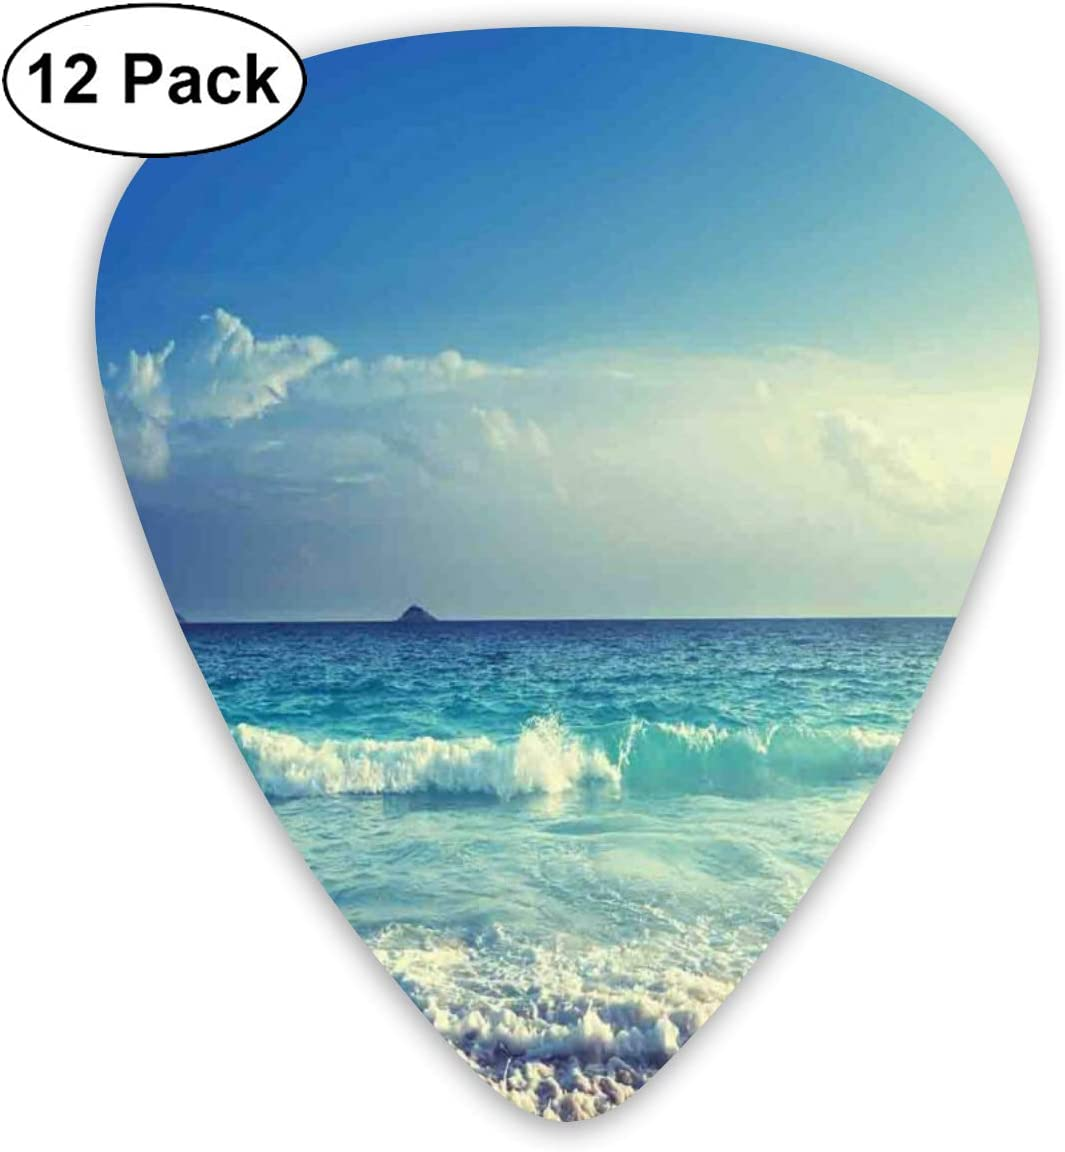 Guitar Picks 12-Pack,Tropical Island Paradise Beach At Sunset Time With Waves And The Misty Sea Image: Amazon.es: Instrumentos musicales